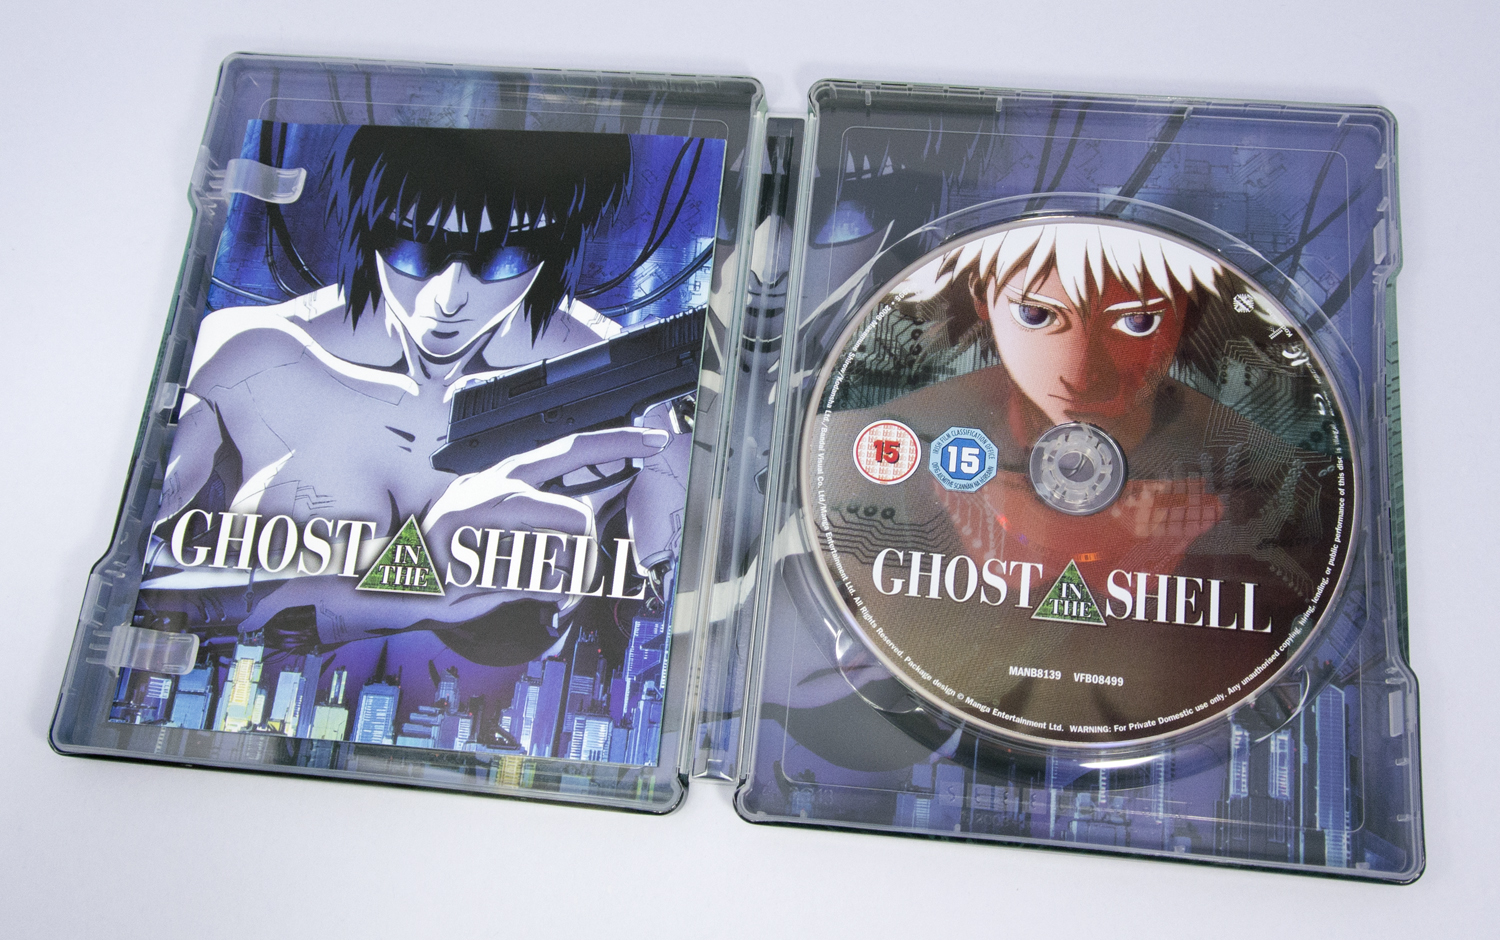 GHOST IN THE SHELL スチールブック